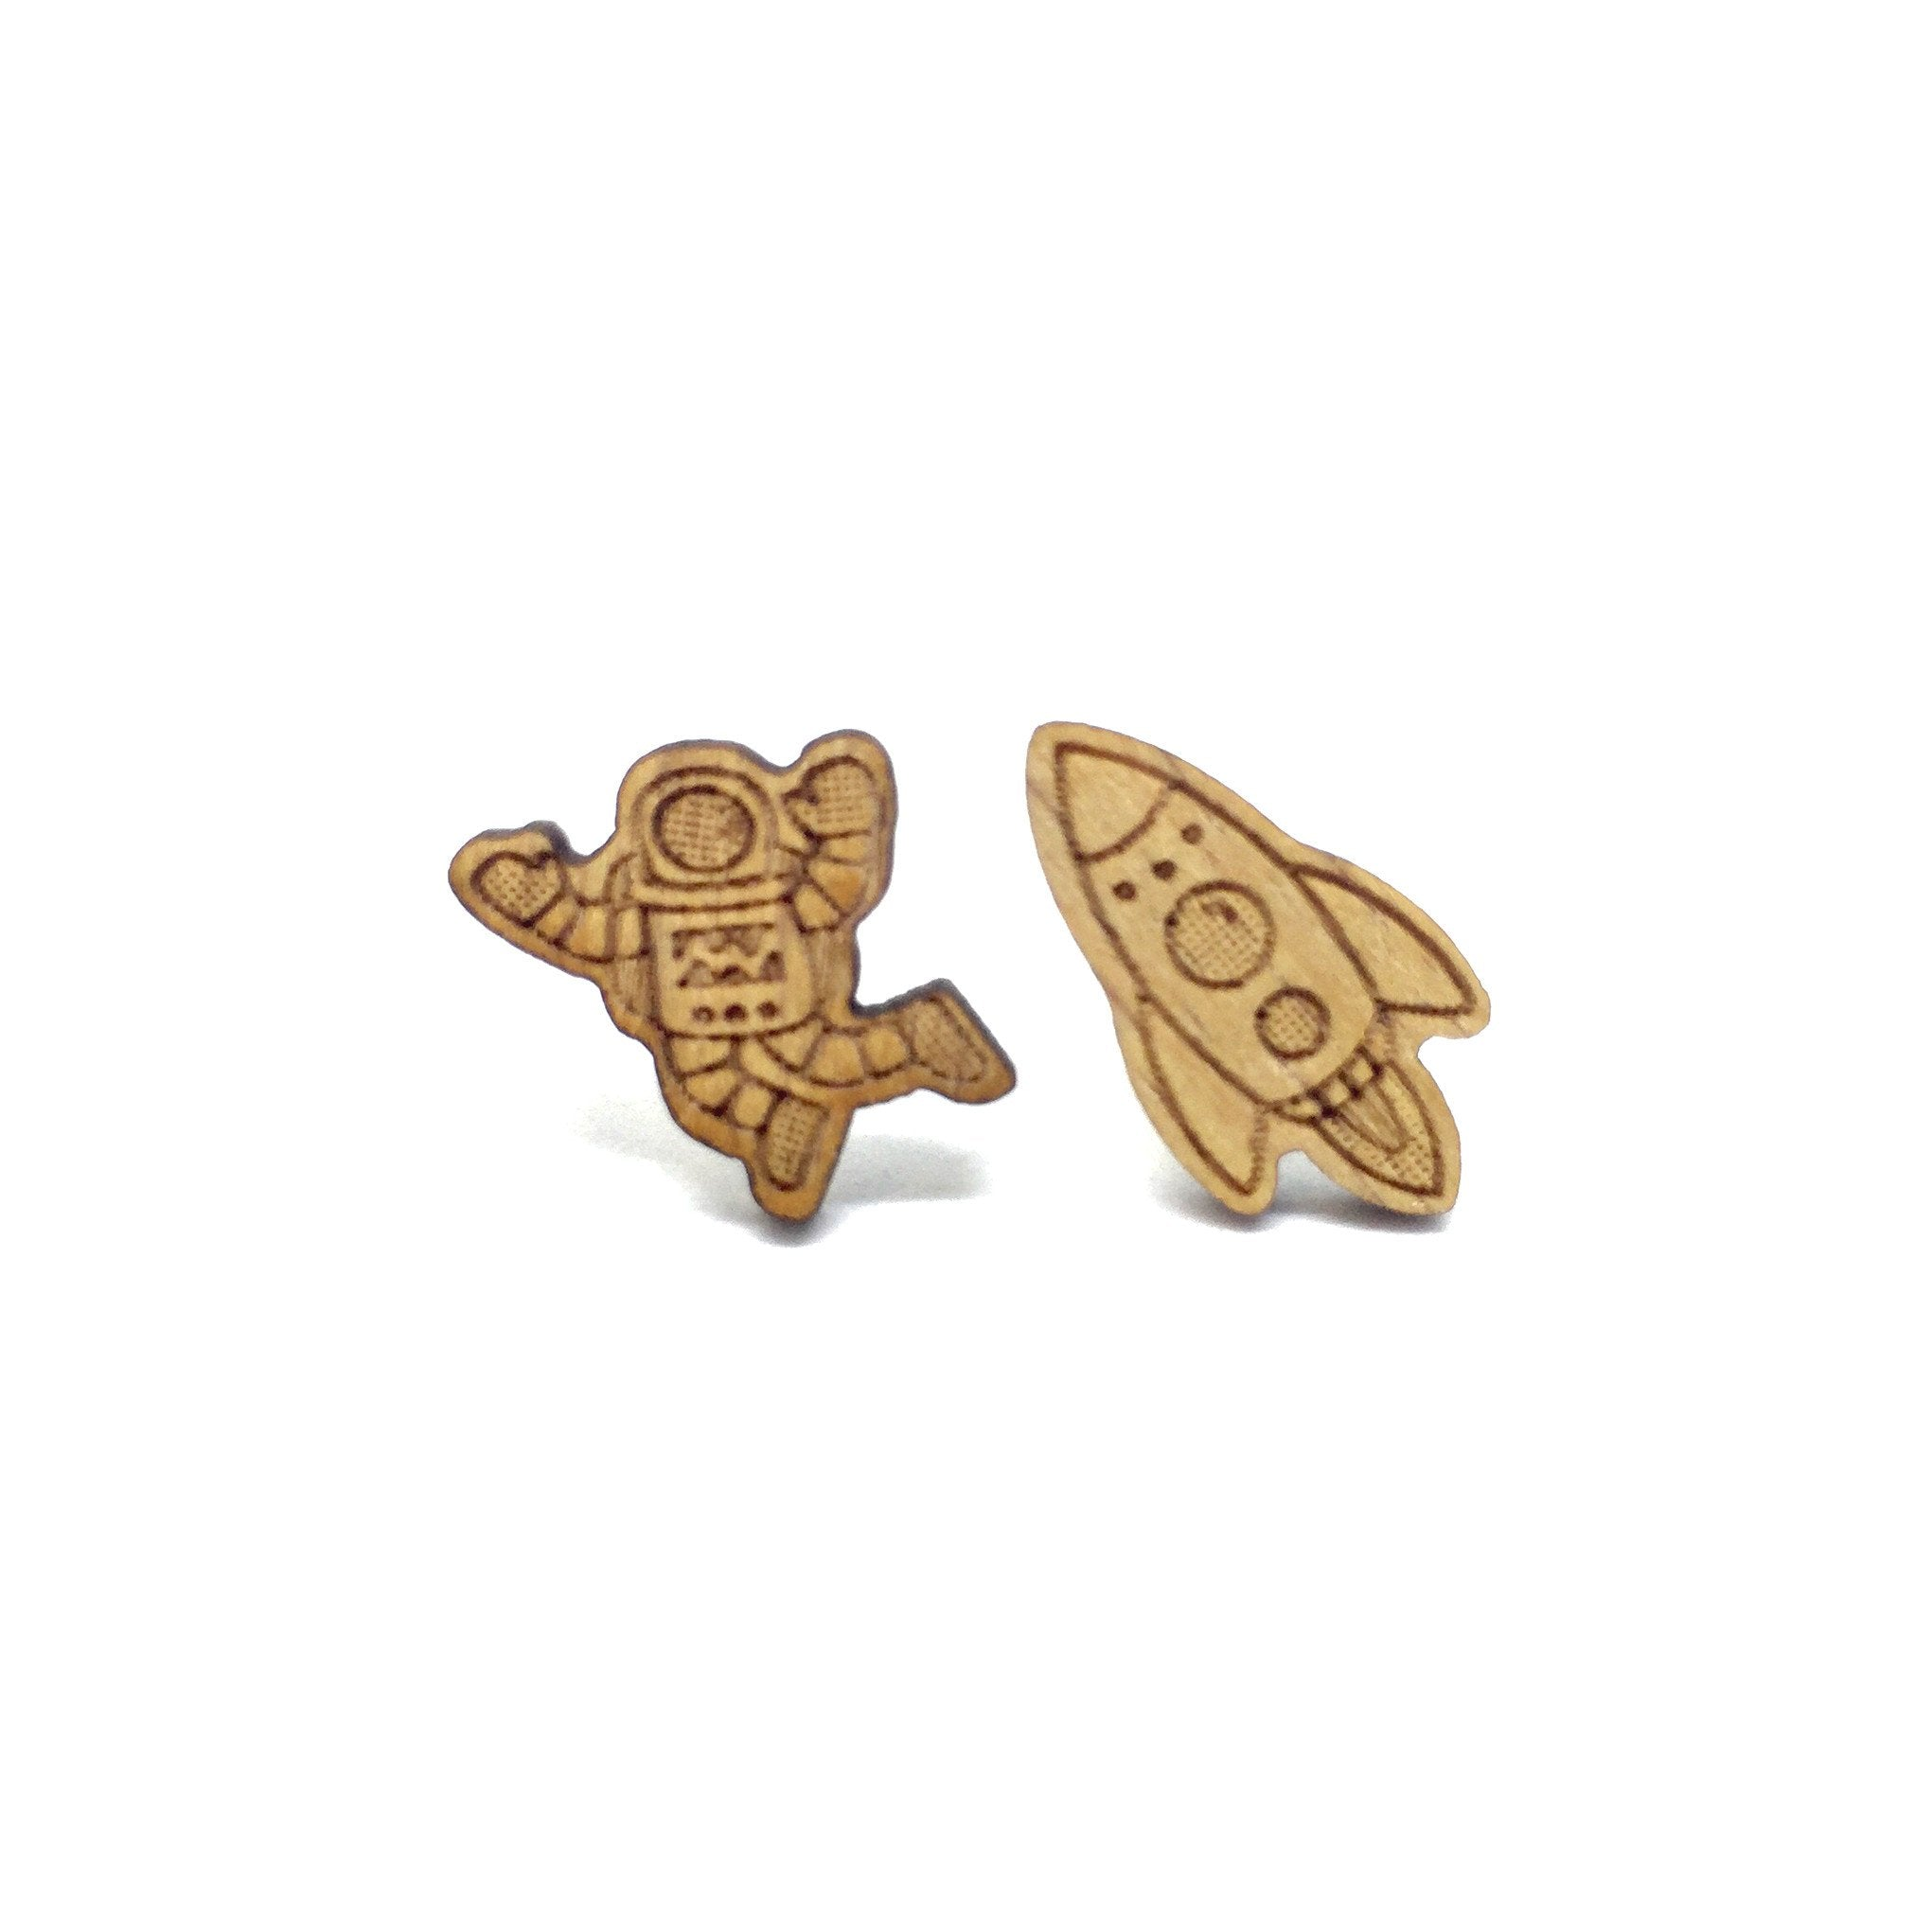 Spaceman Rocket Laser Cut Wood Earrings